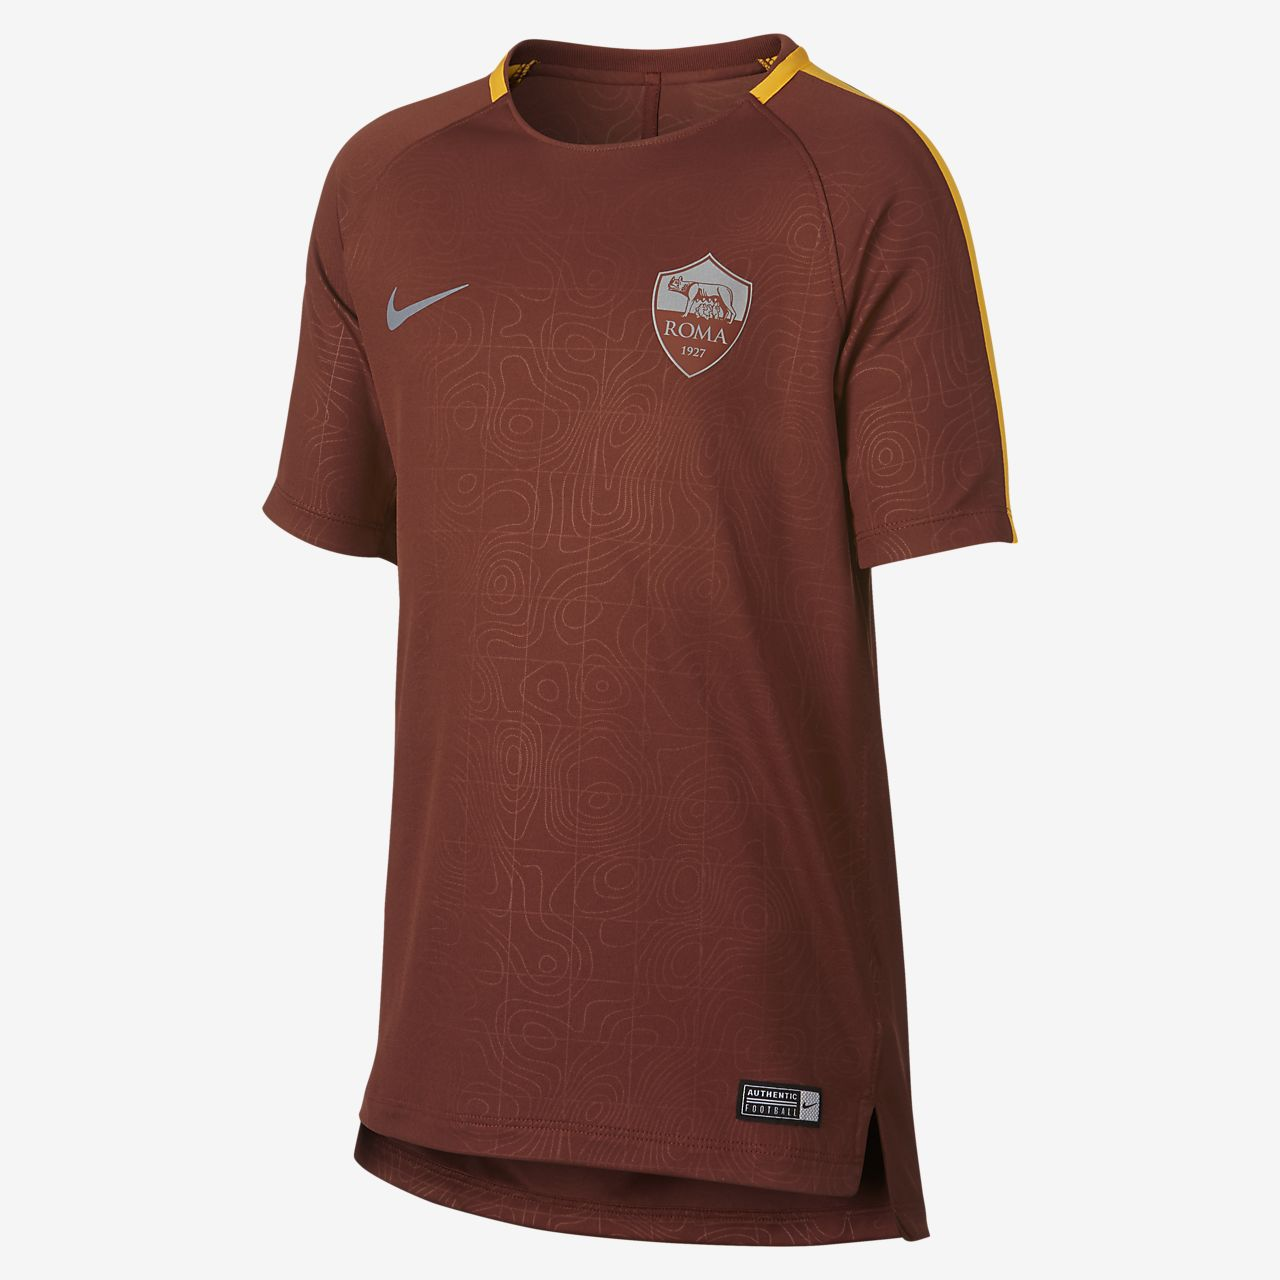 479502b6 A.S. Roma Dri-FIT Squad Older Kids' Football Top. Nike.com SI